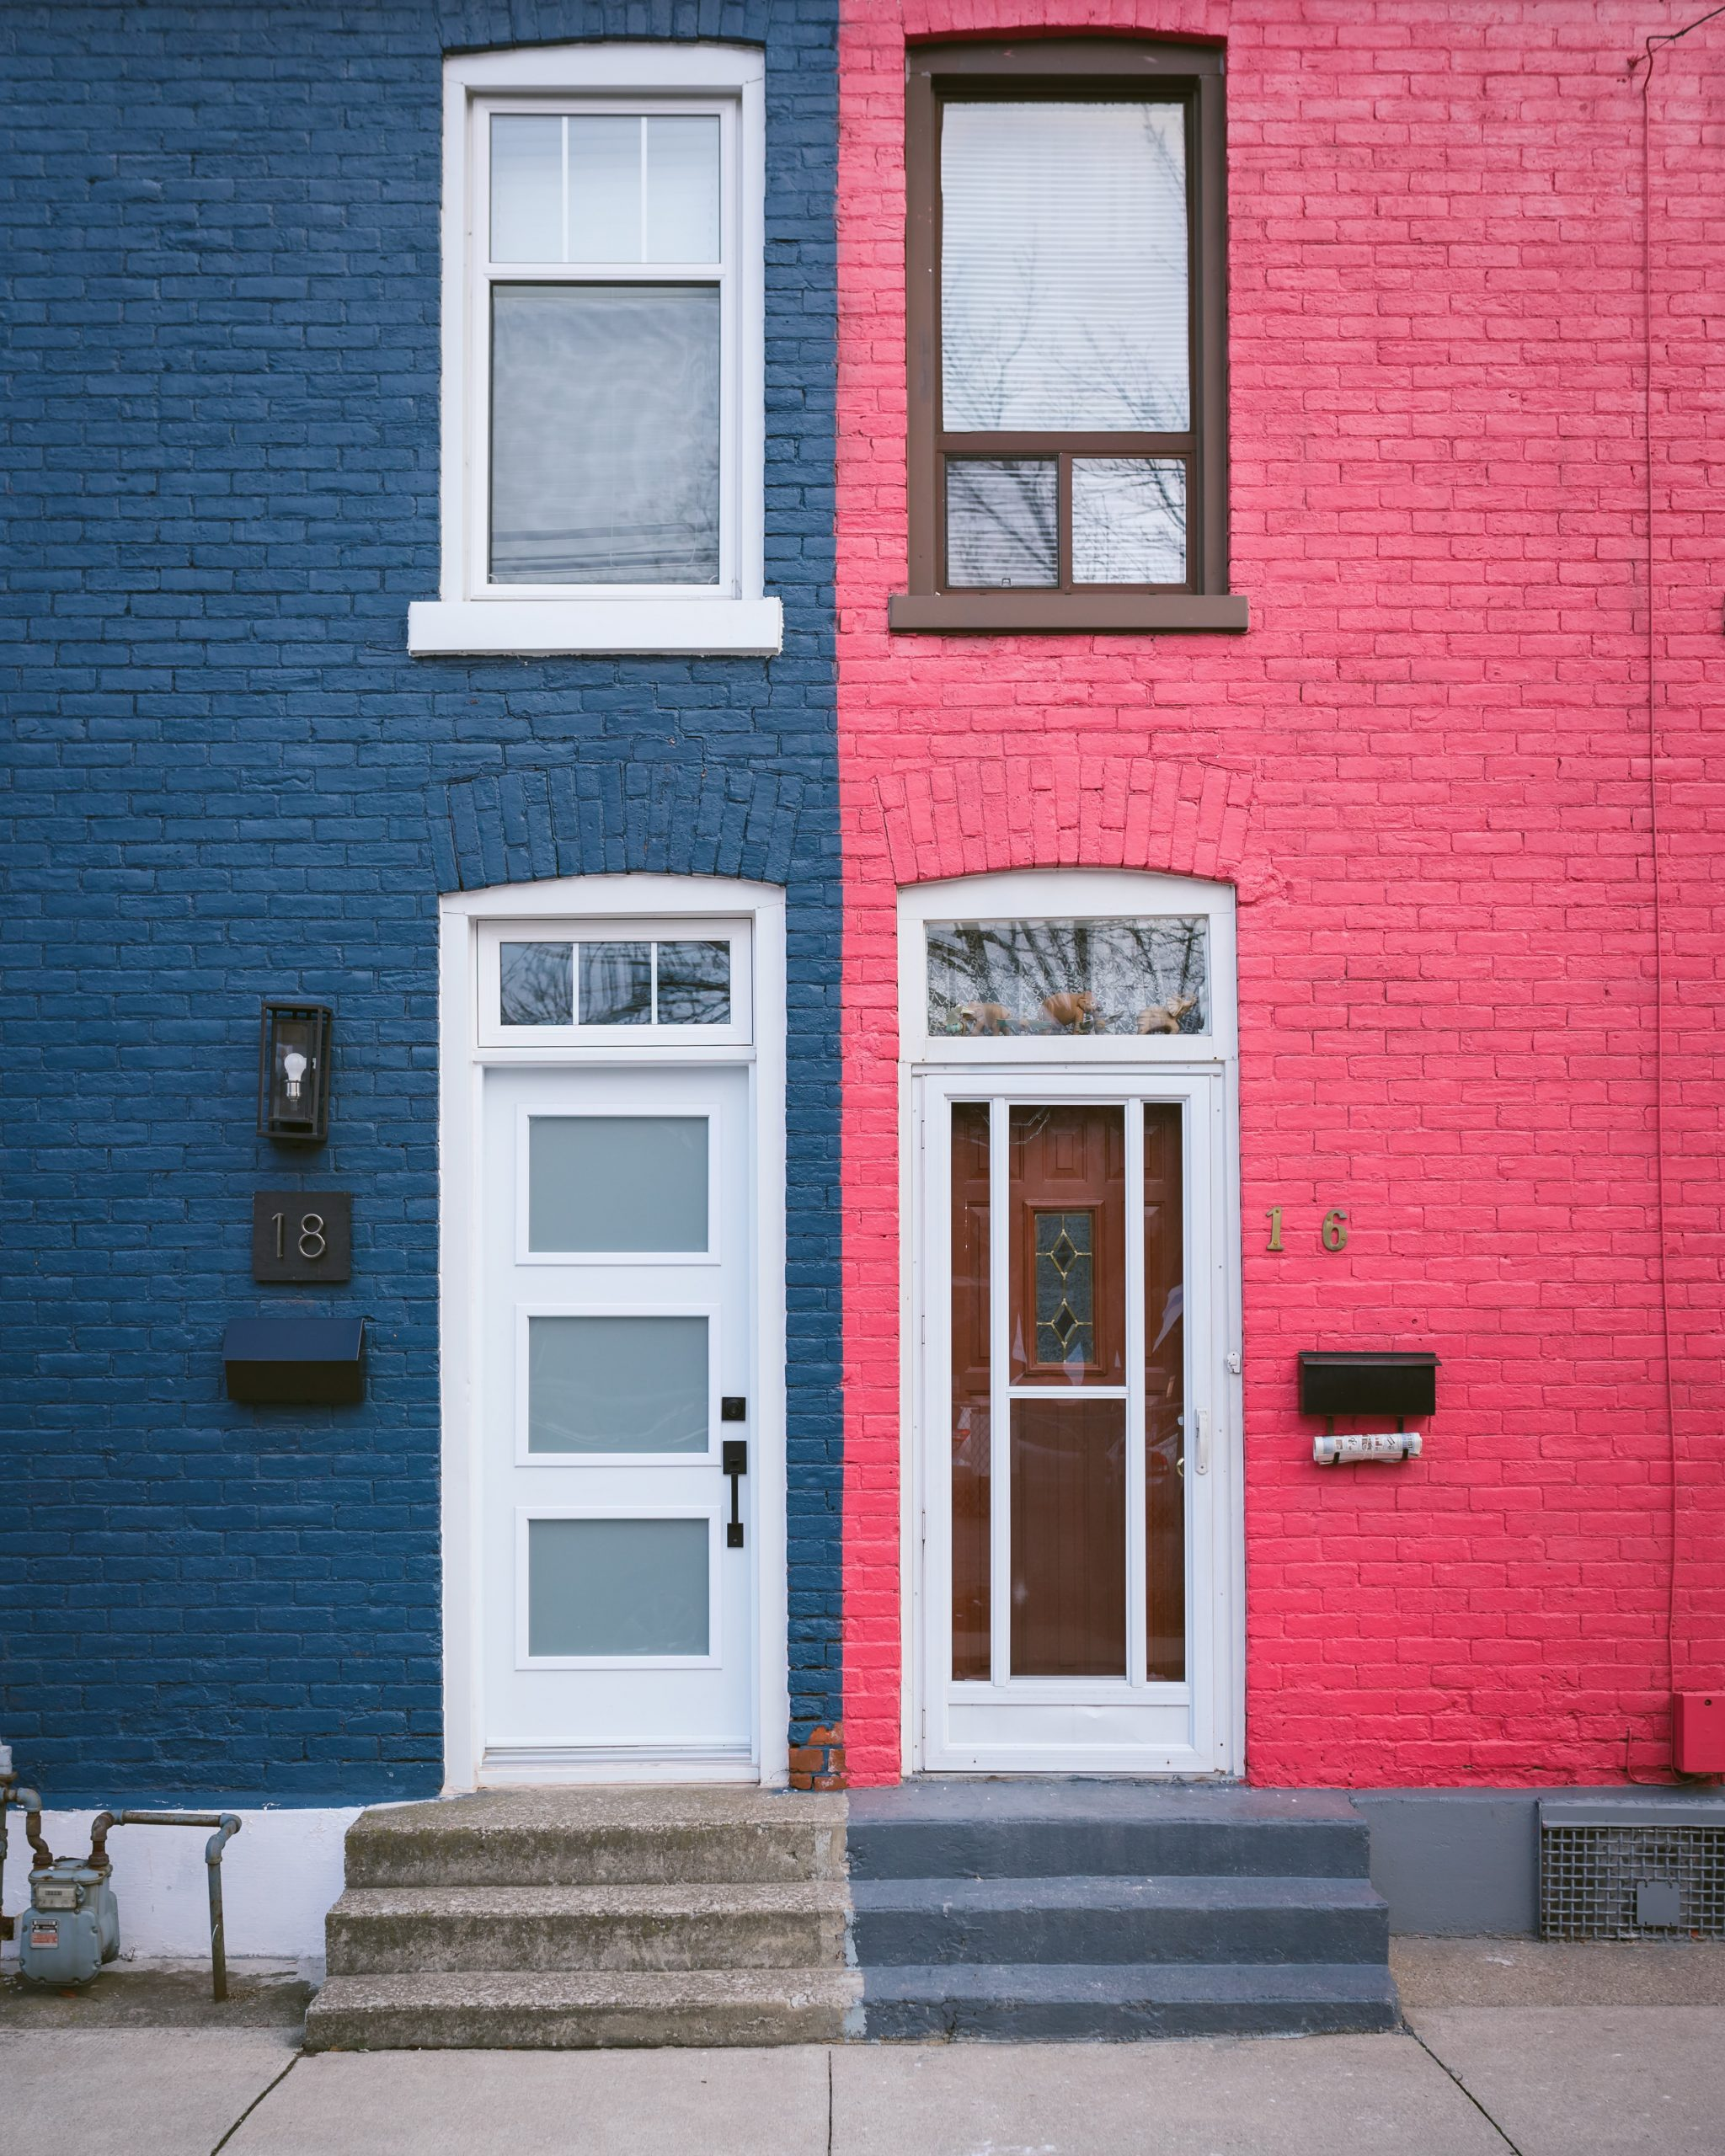 5 Tips to Find Bad Credit Housing for Rent in London